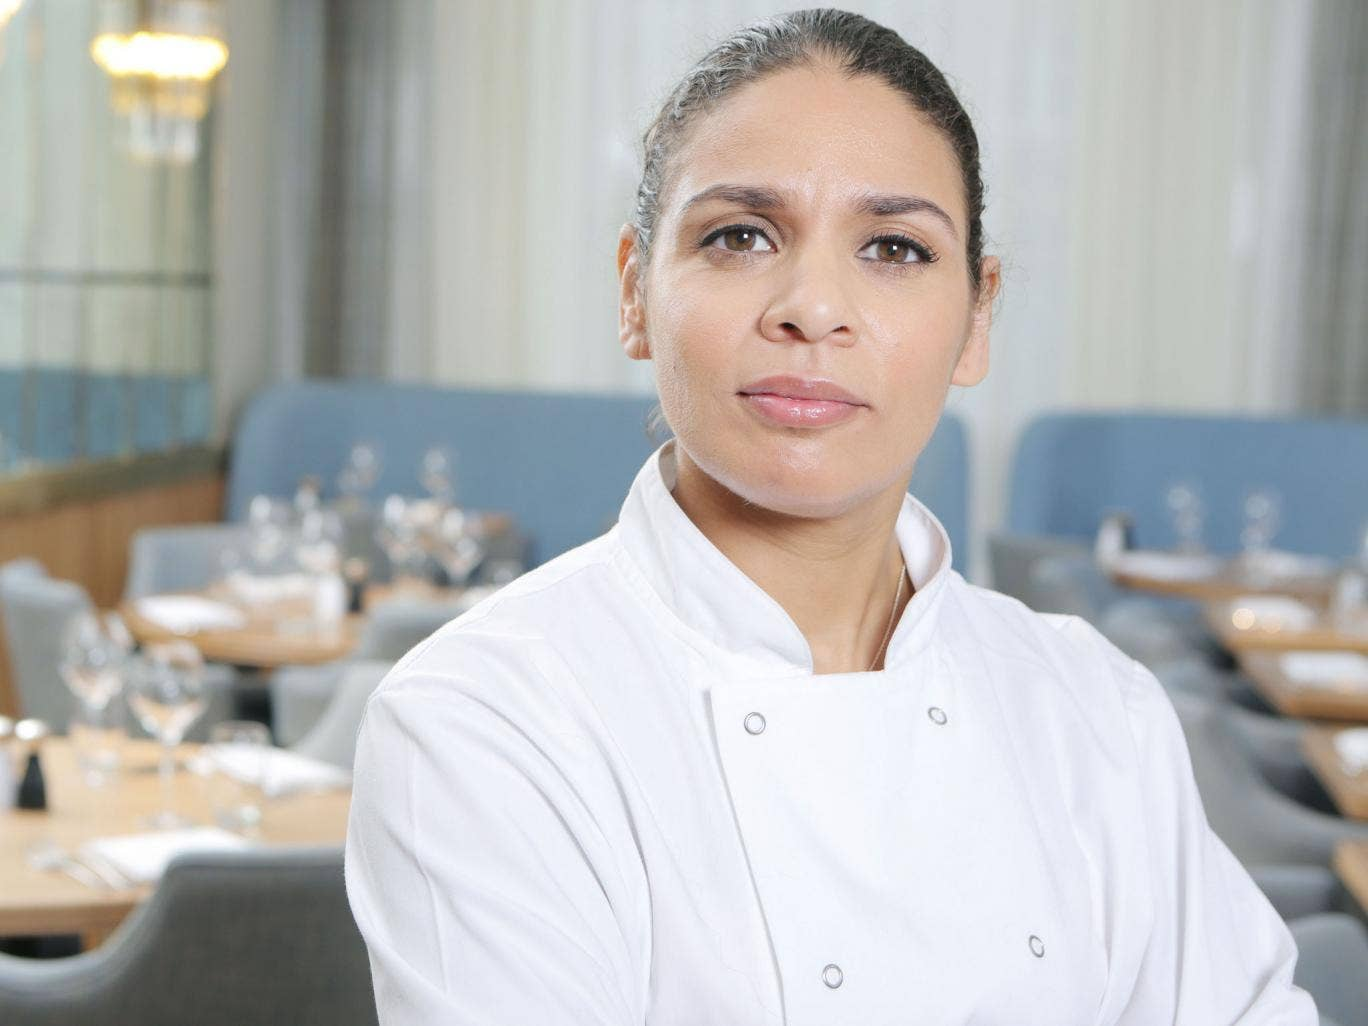 Moss opened her first restaurant - the Corner Restaurant and Champagne Bar - in March at Selfridges